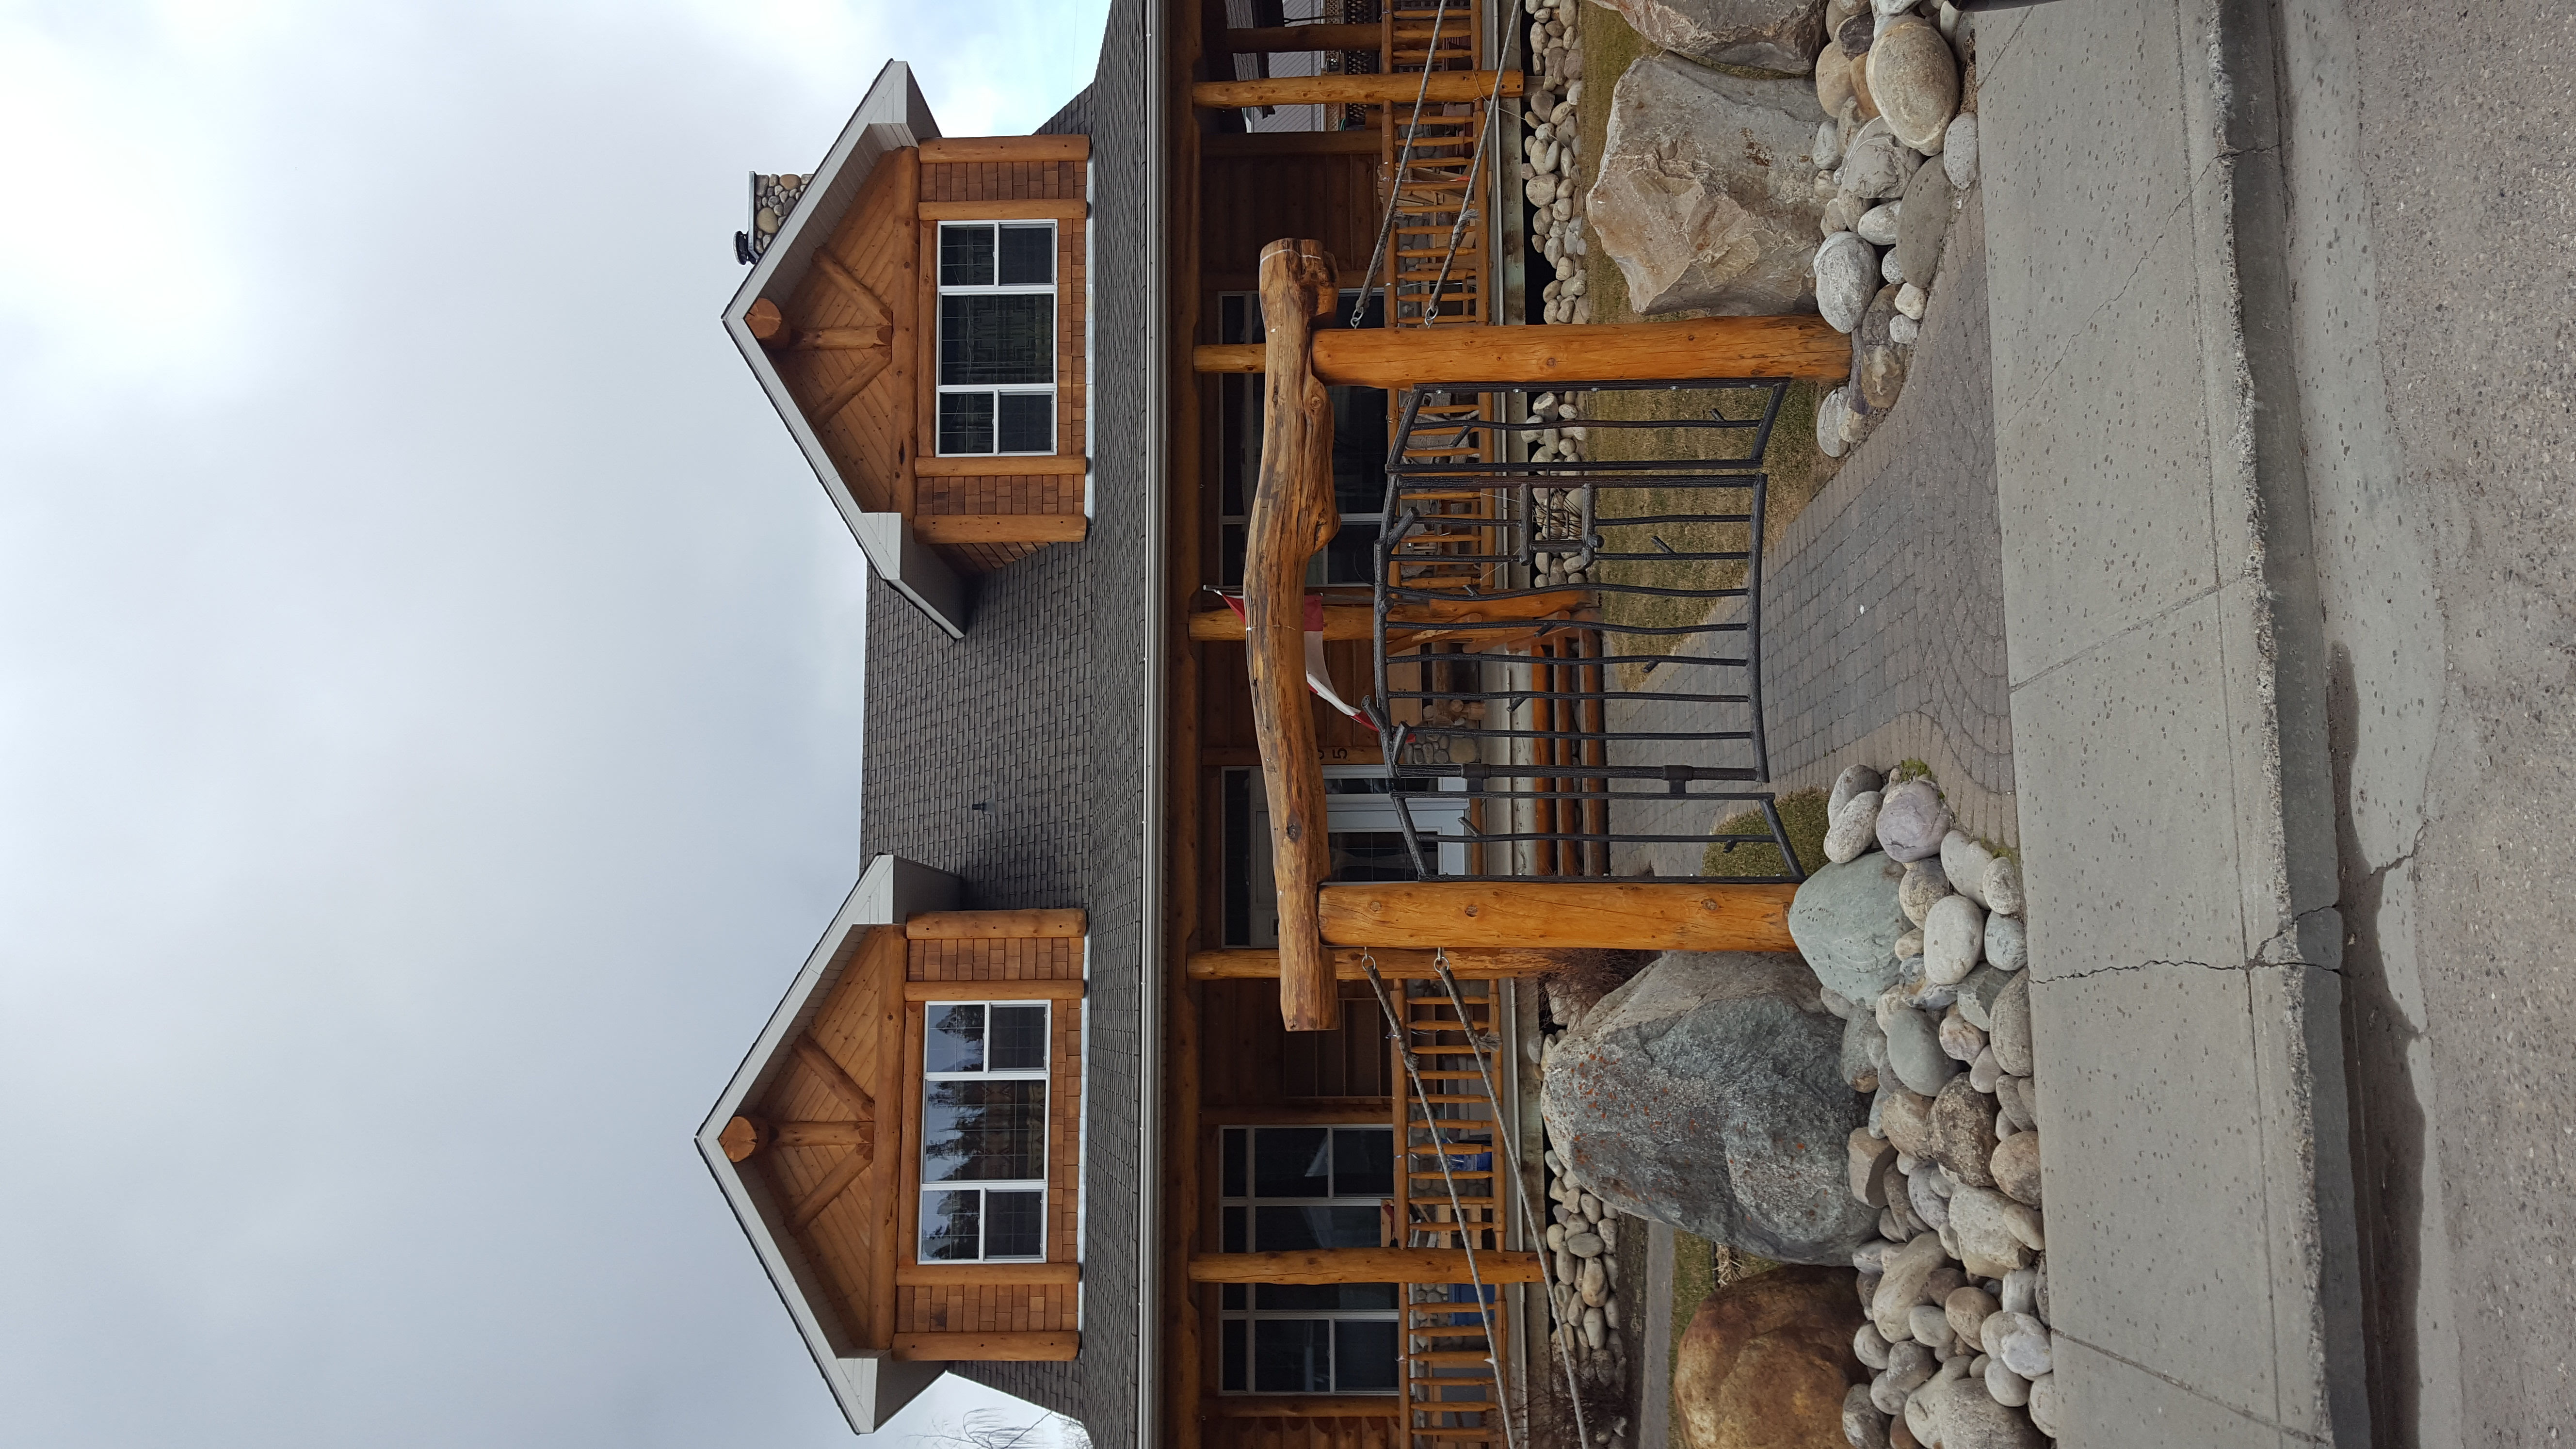 Roche Bonhomme Rustic Suites - image on stayinjasper.com